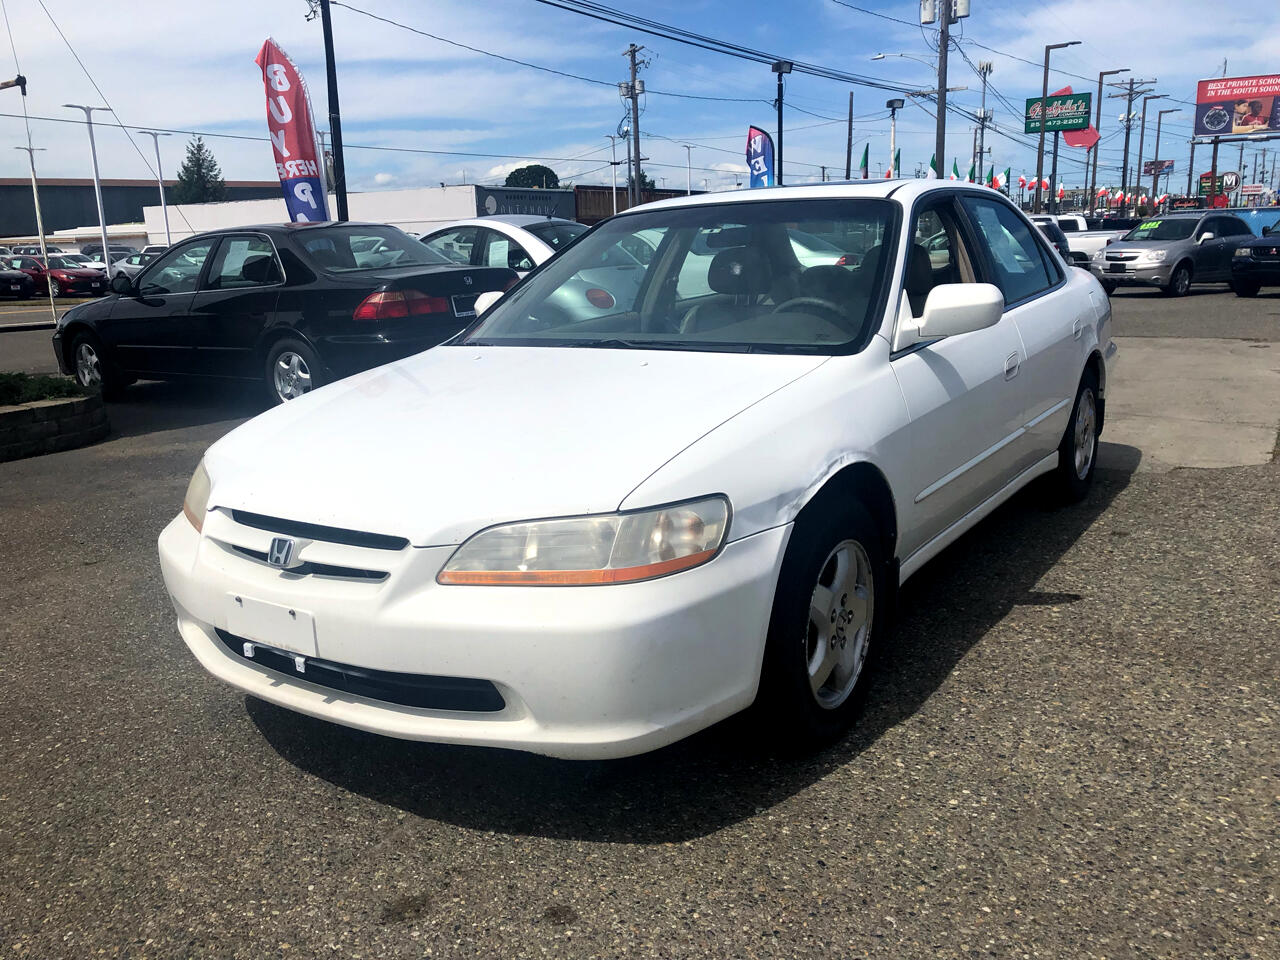 Honda Accord Sdn 4dr Sdn EX Auto V6 W/Leather 2000